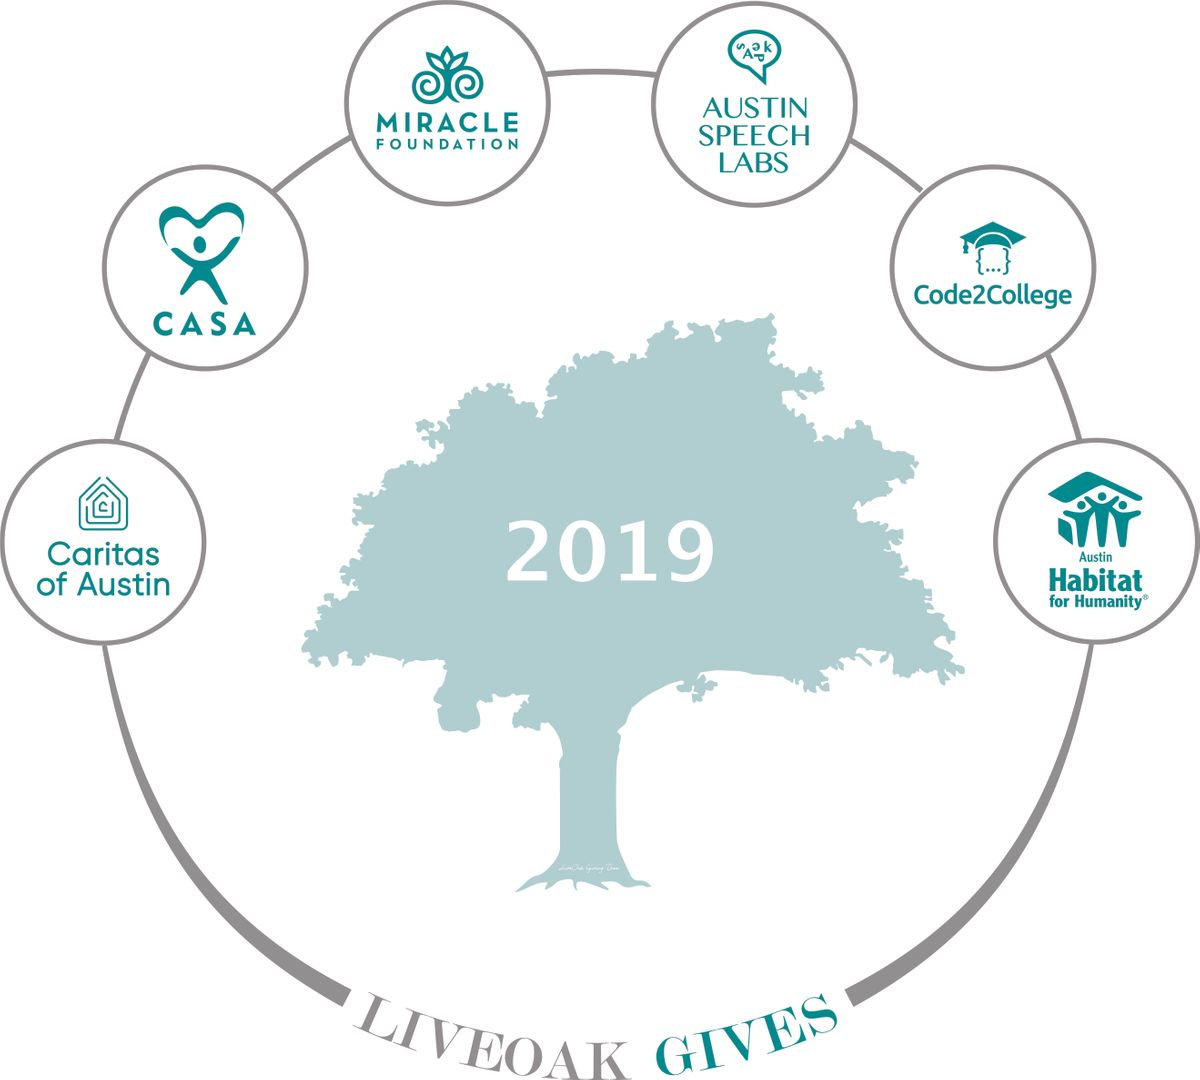 LiveOak Gives Logo FINAL w CASA 2019 edits.jpg